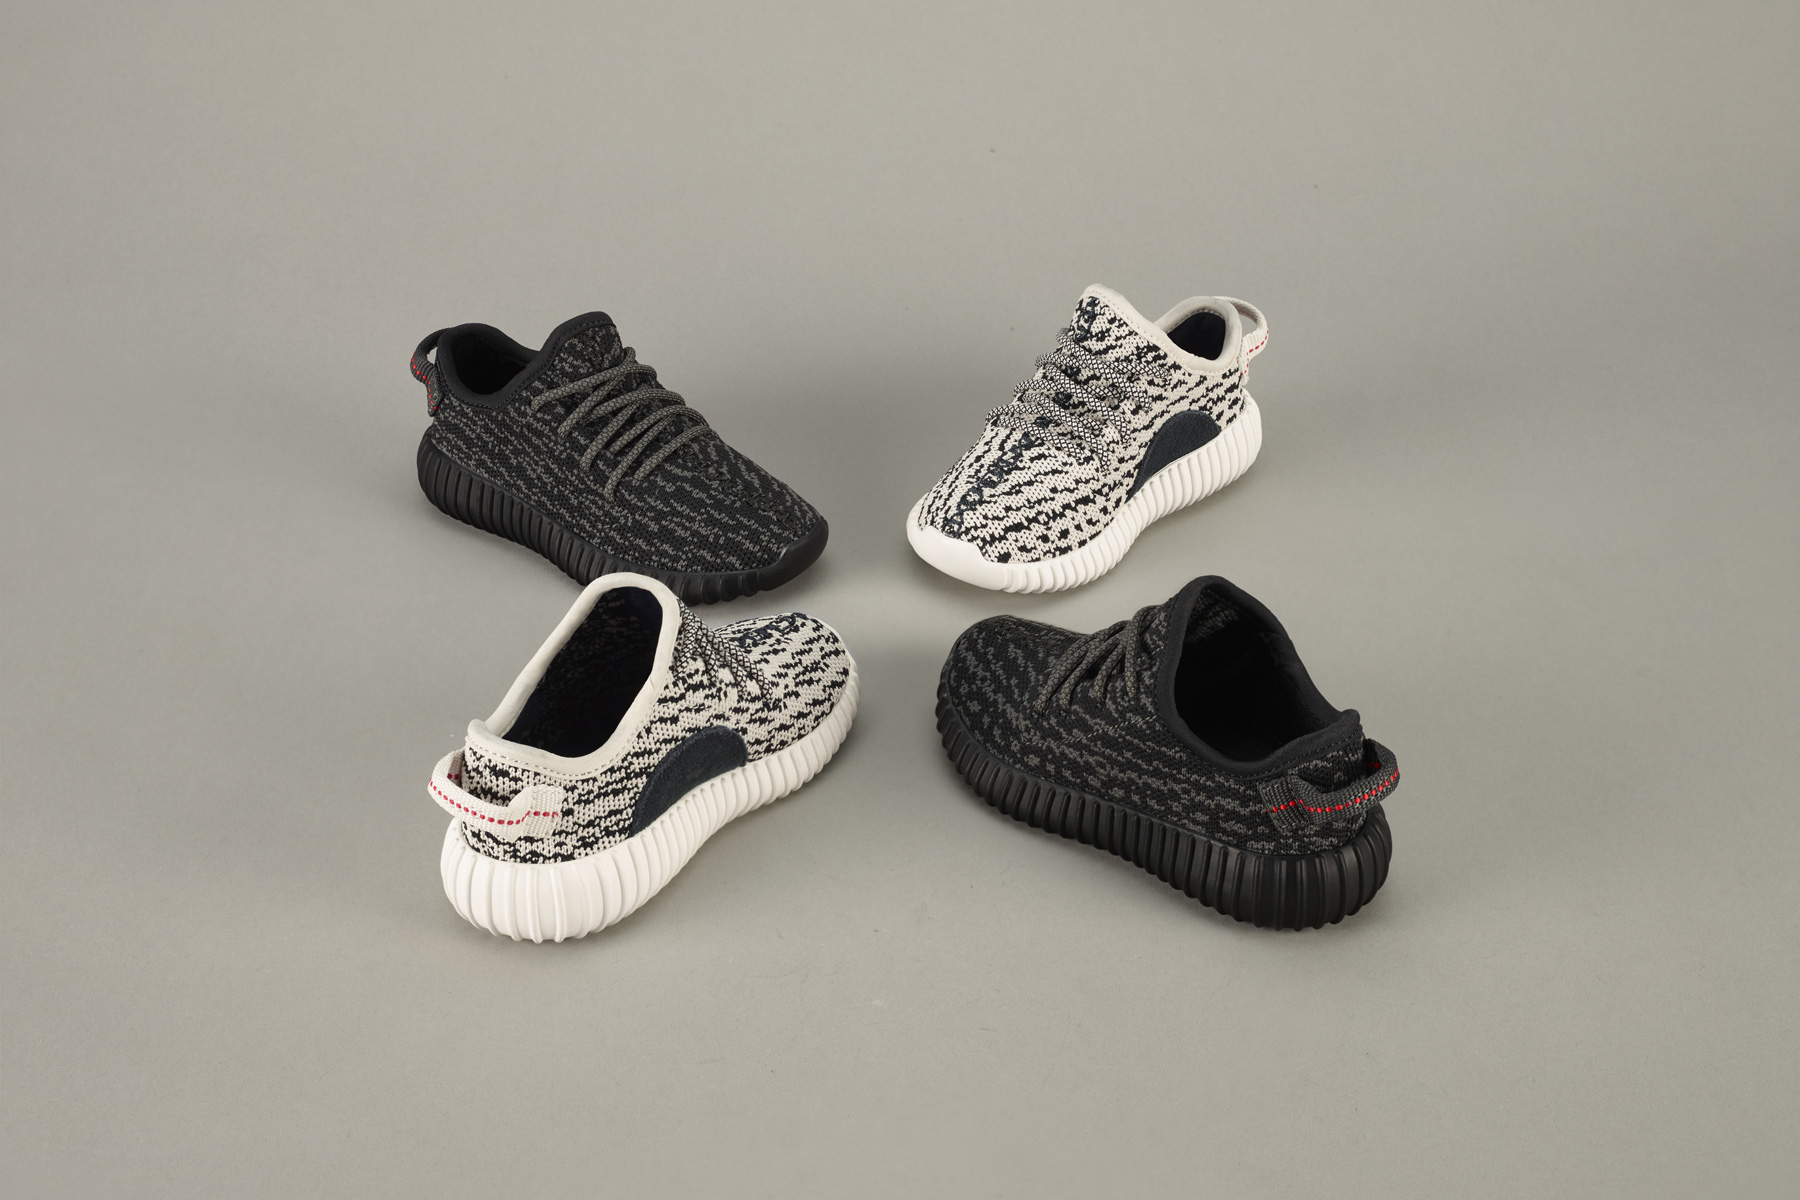 adidas Originals Officially Unveils the Yeezy Boost 350 Infant